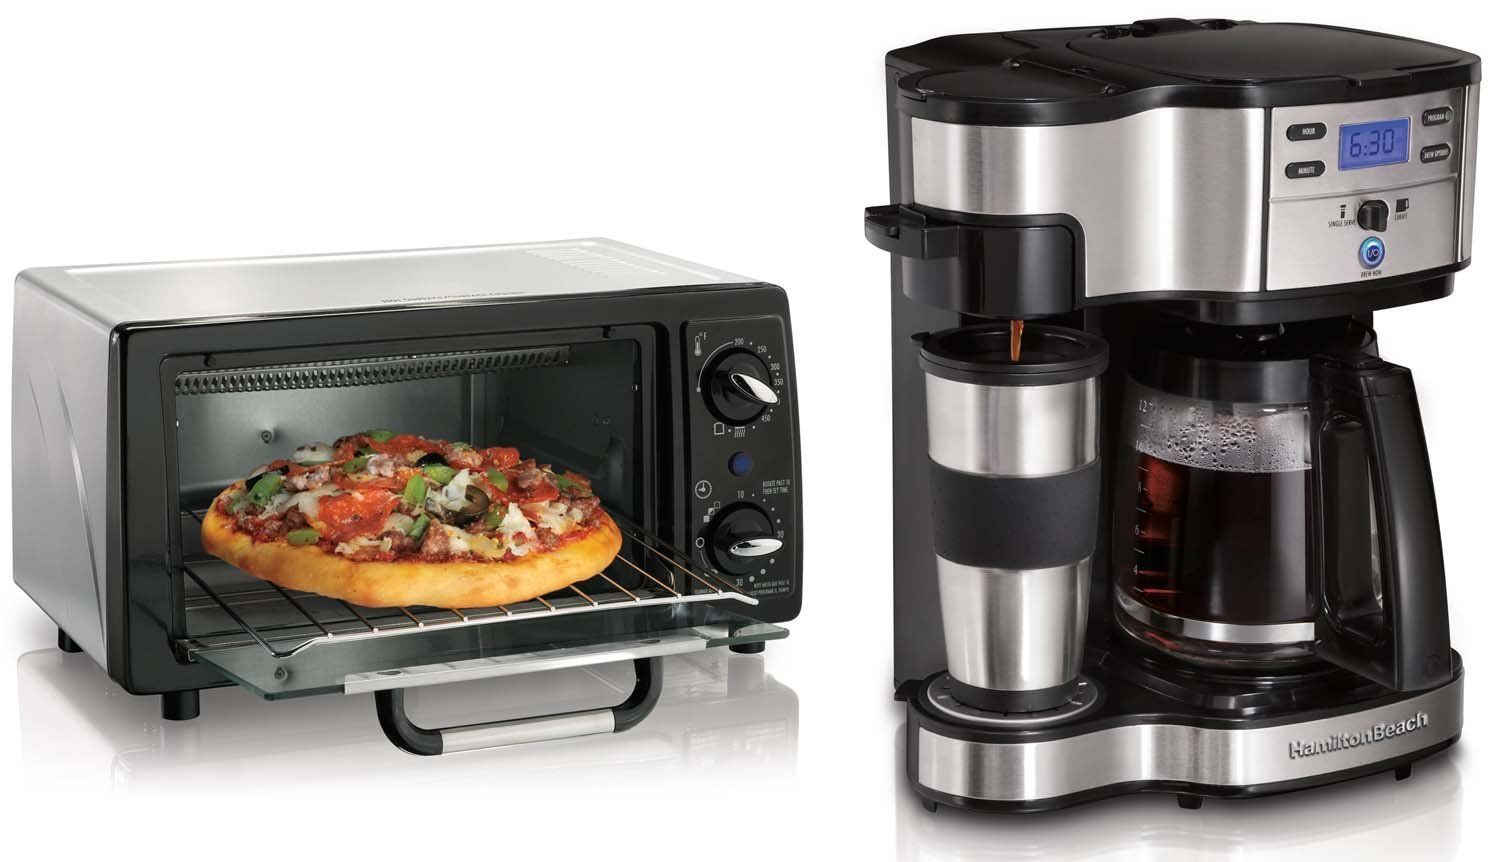 Hamilton beach 4 slice toaster oven and 12 cup digital